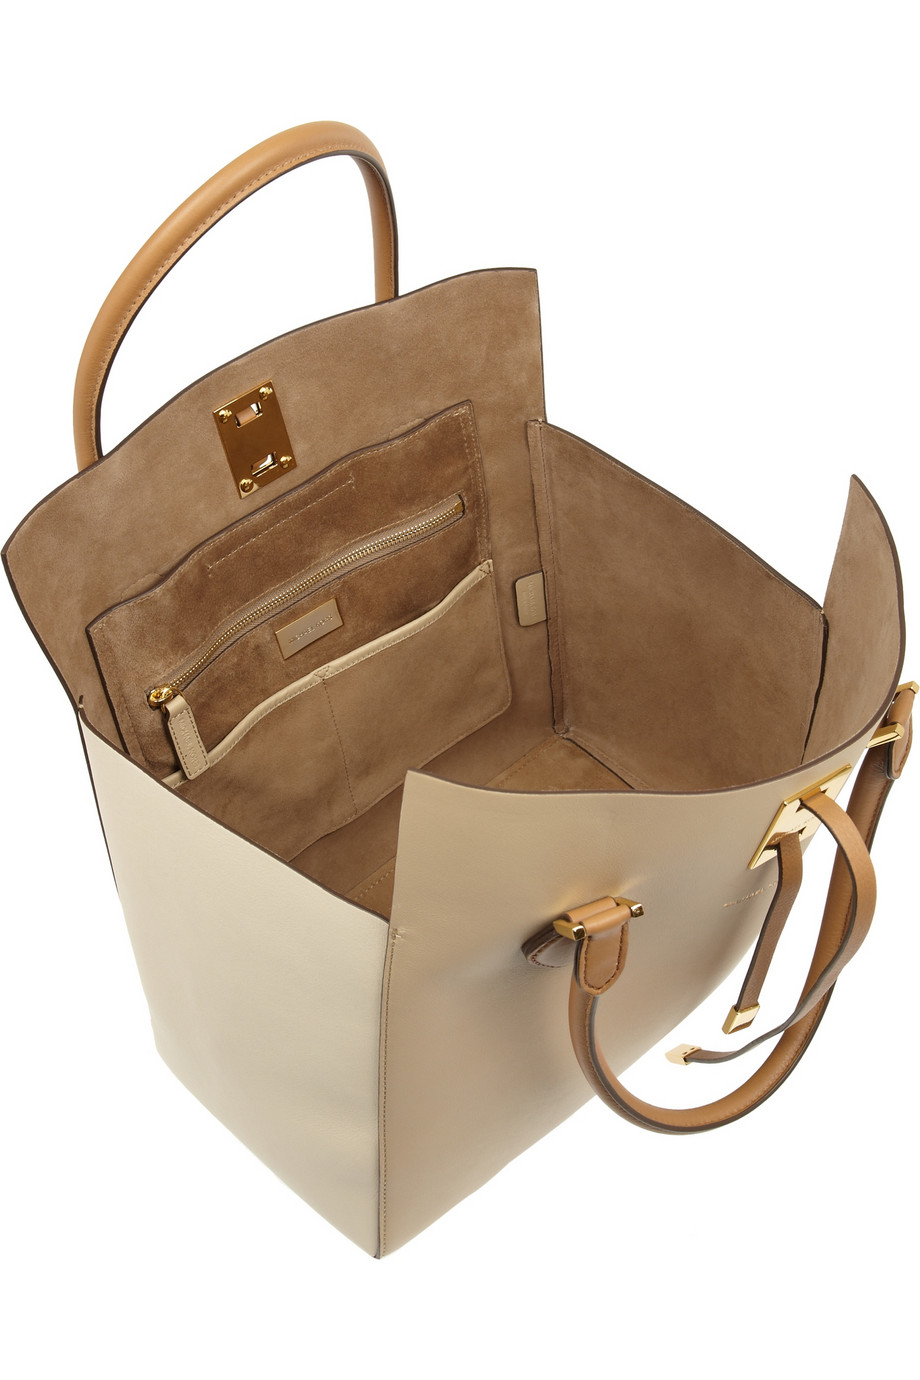 c15b3765f4ee Michael Kors Miranda Large Colorblock Leather Tote in Natural - Lyst